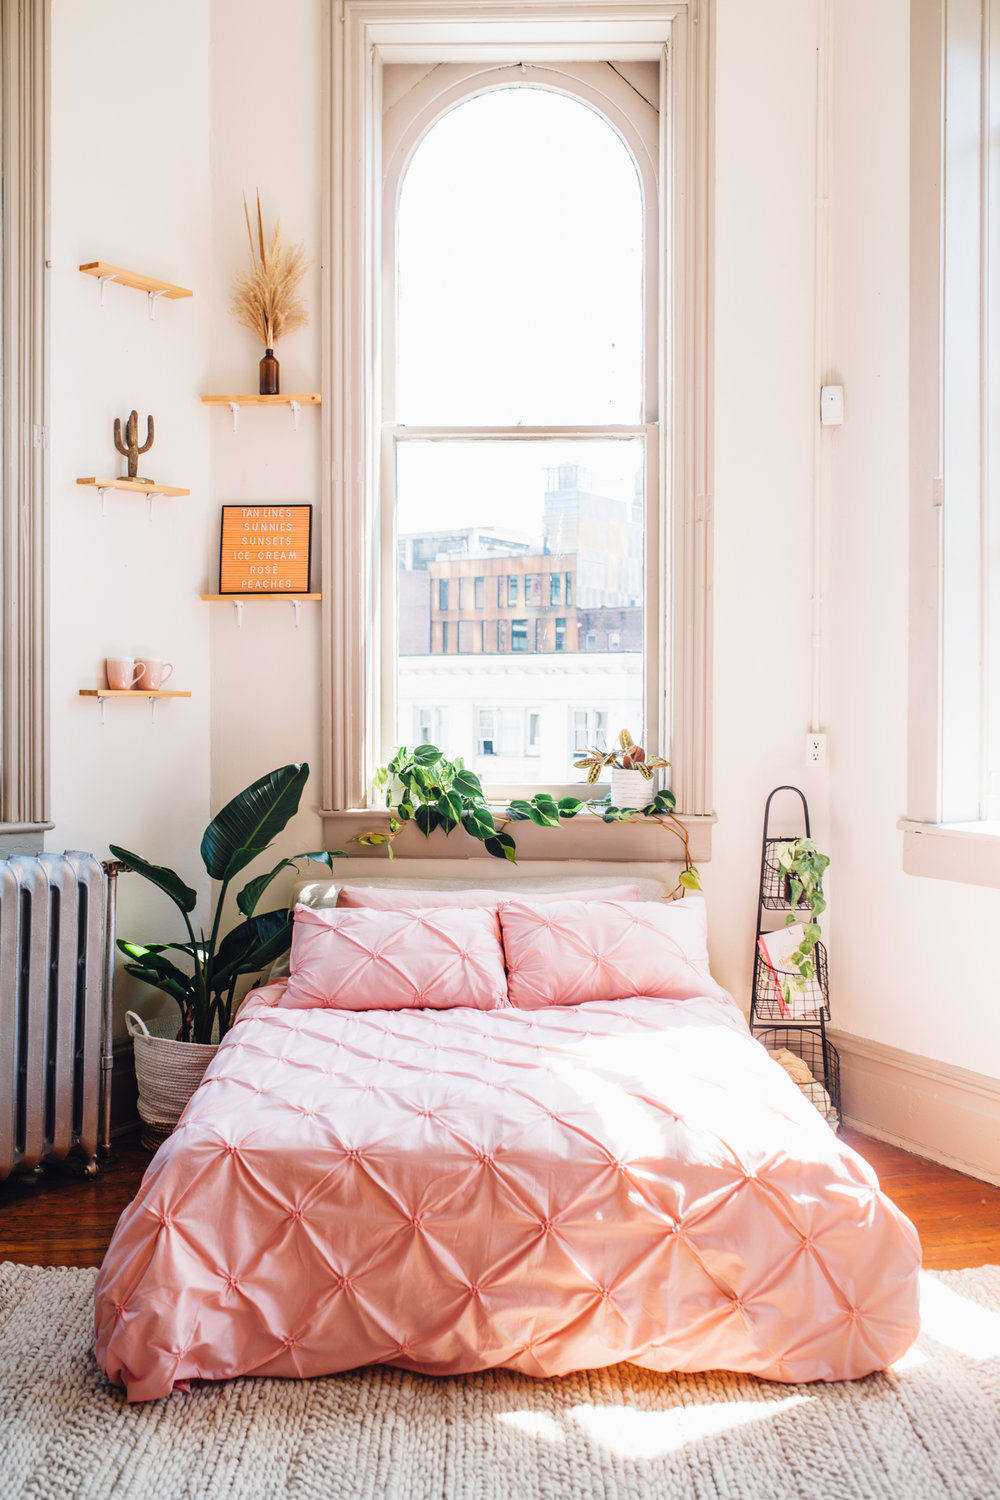 Exceptionnel We Are Very Excited About Urban Barnu0027s New Summer Collection! We Are All  About That Blush Bedroom Decor!. I (Lindsay) Just Moved Into A New  Apartment, ...